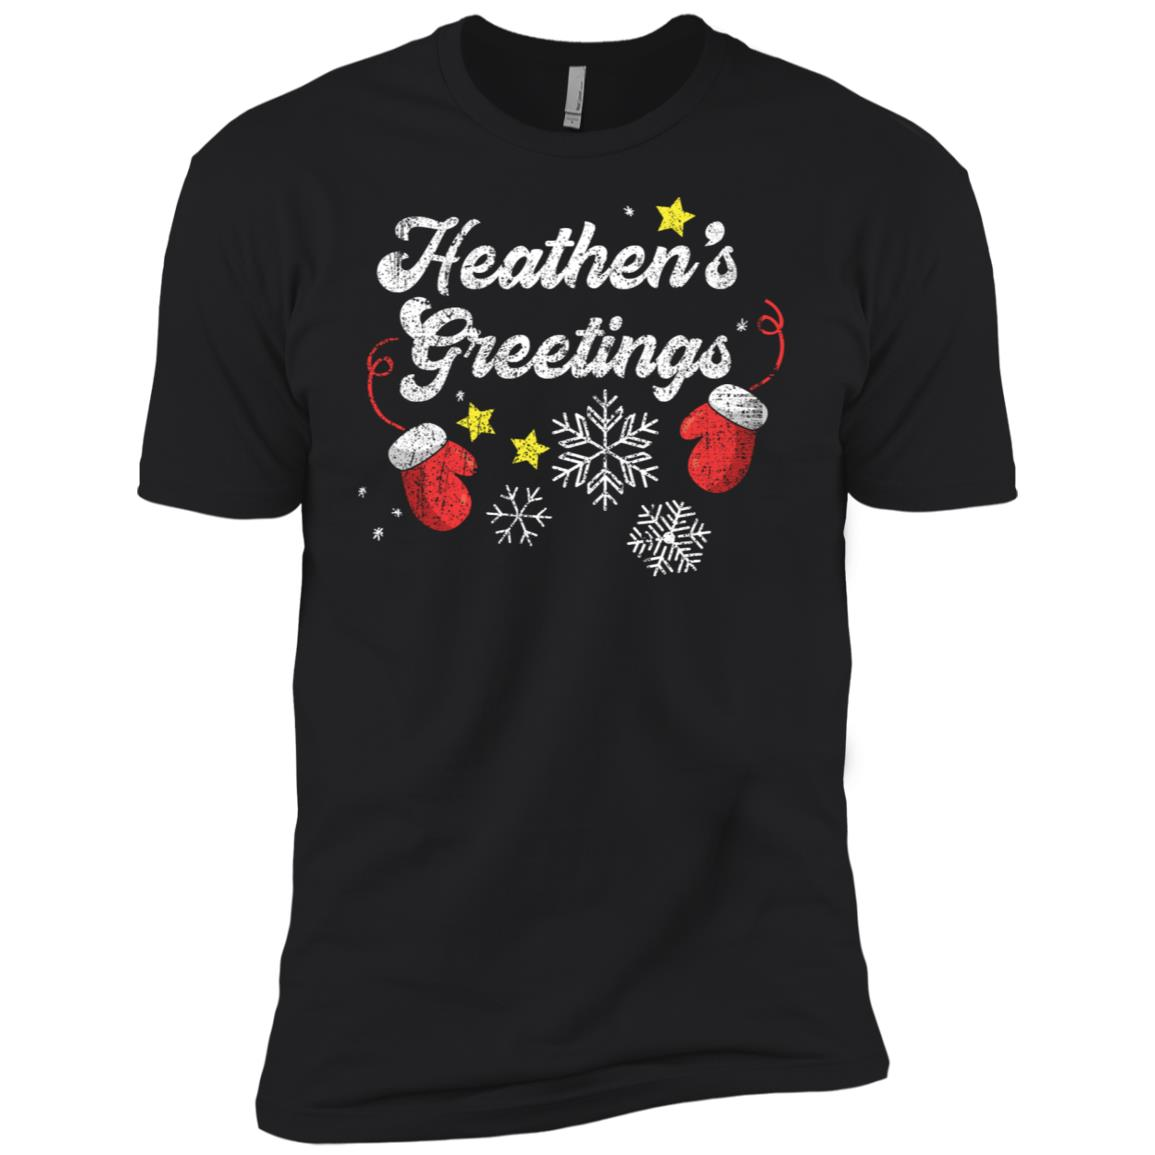 Heathen's Greetings Atheist Christmas (Distressed) Men Short Sleeve T-Shirt